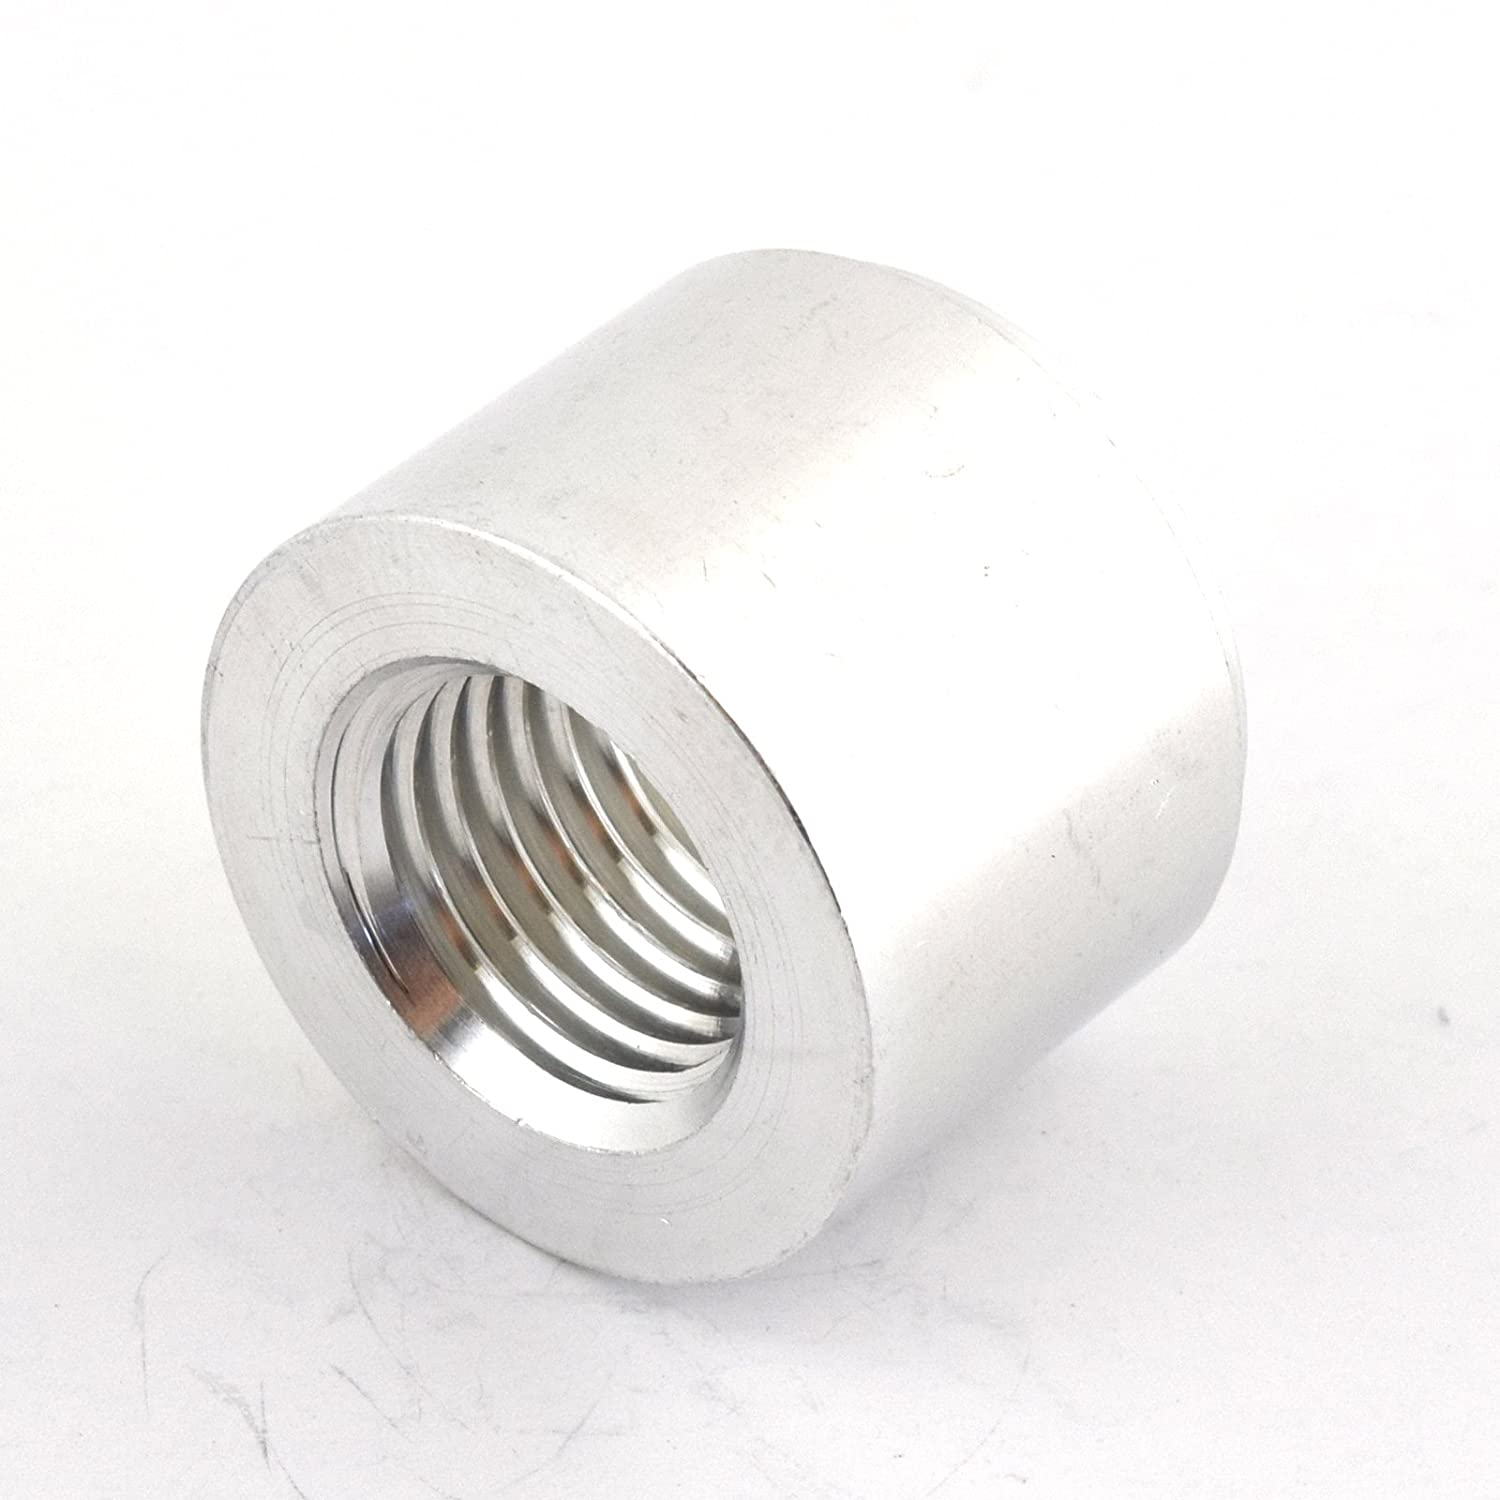 Kraken Automotive - Silver 1/4' NPT Straight Aluminum Weld-On Female Bung for Fuel, Oil, Coolant and Air